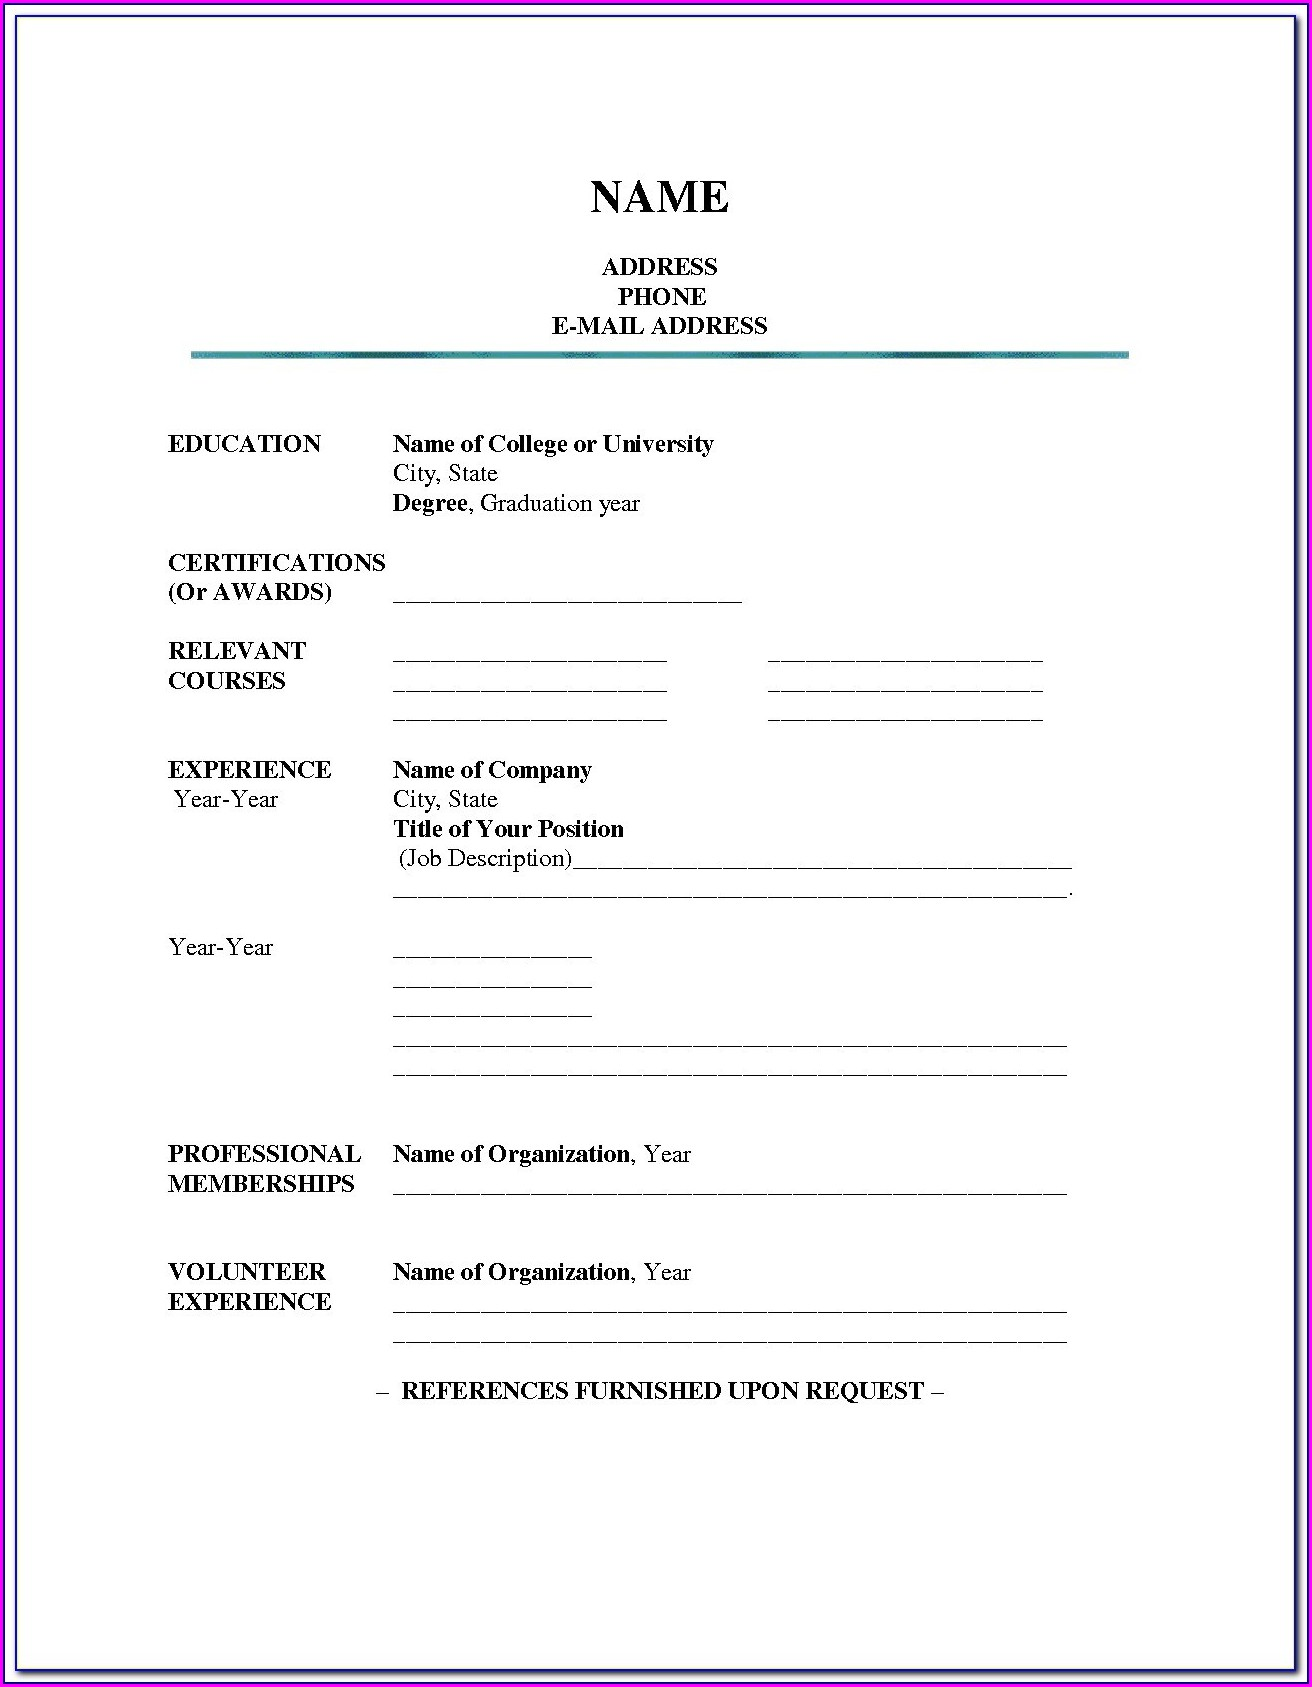 Blank Resume Application Form Download